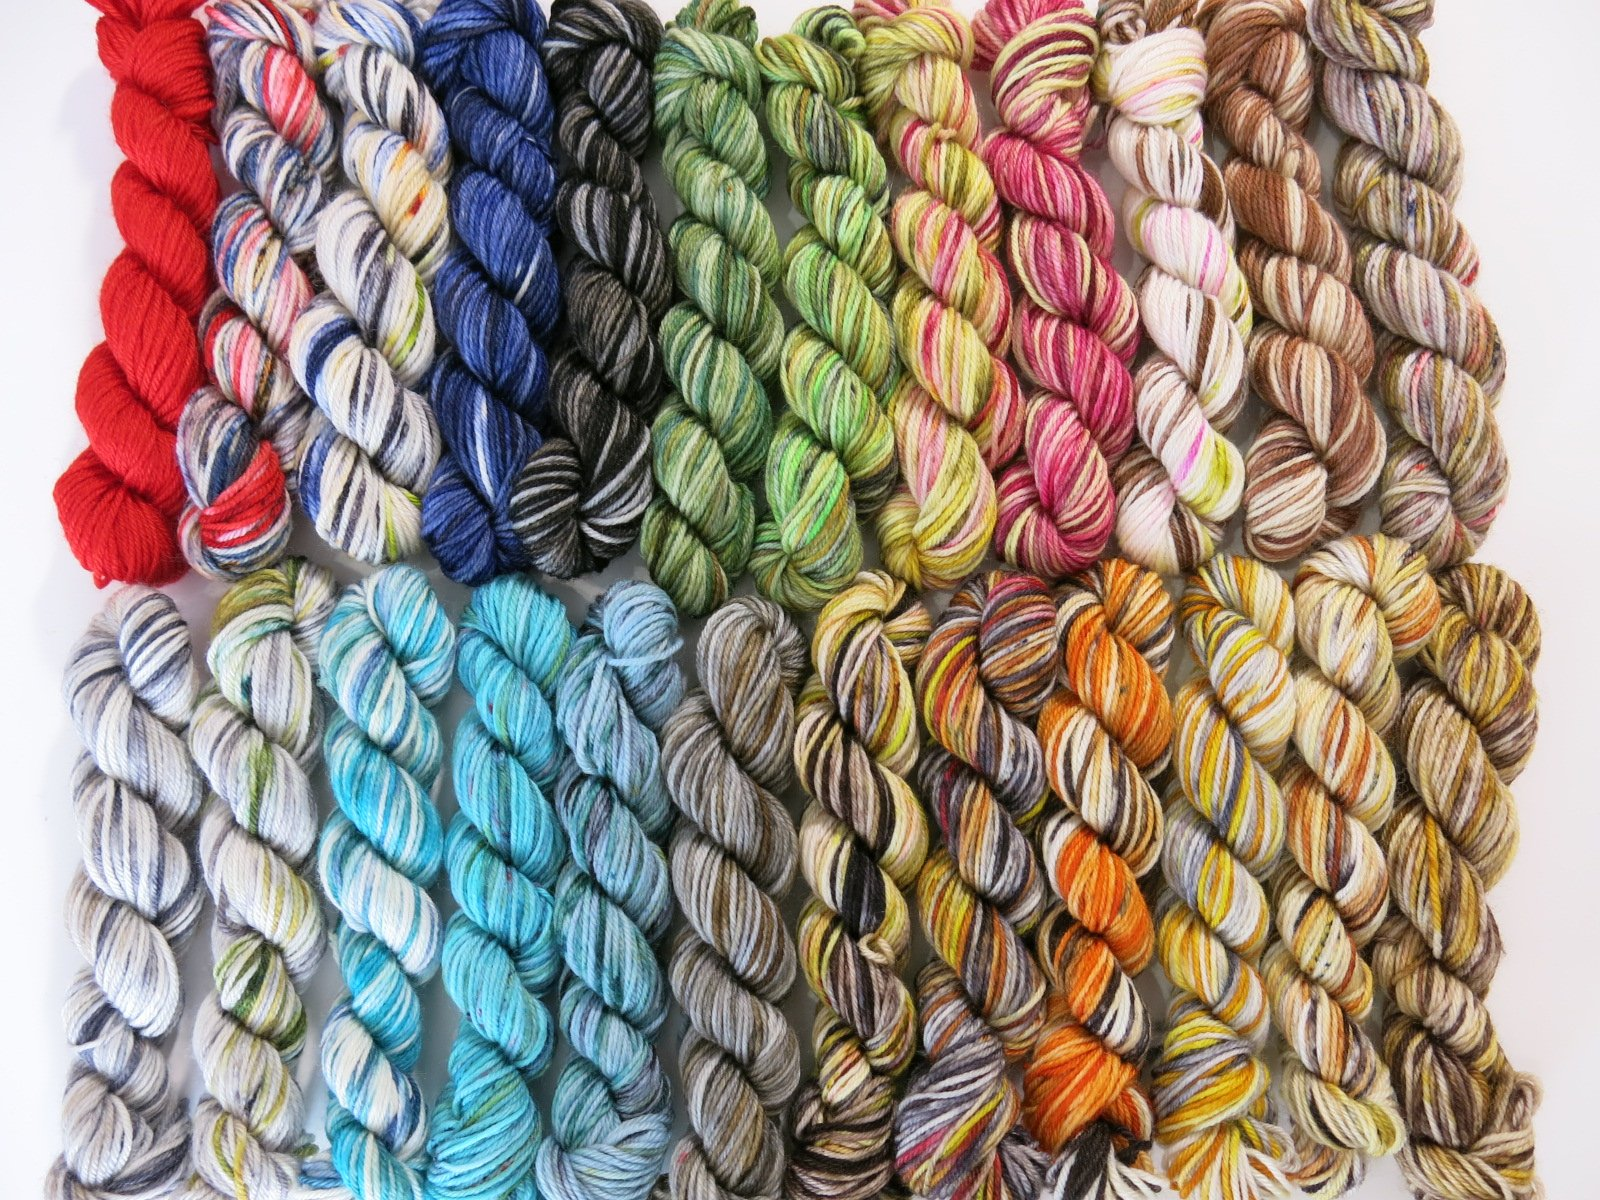 scottish myth and folklore mini skein set by my mama knits